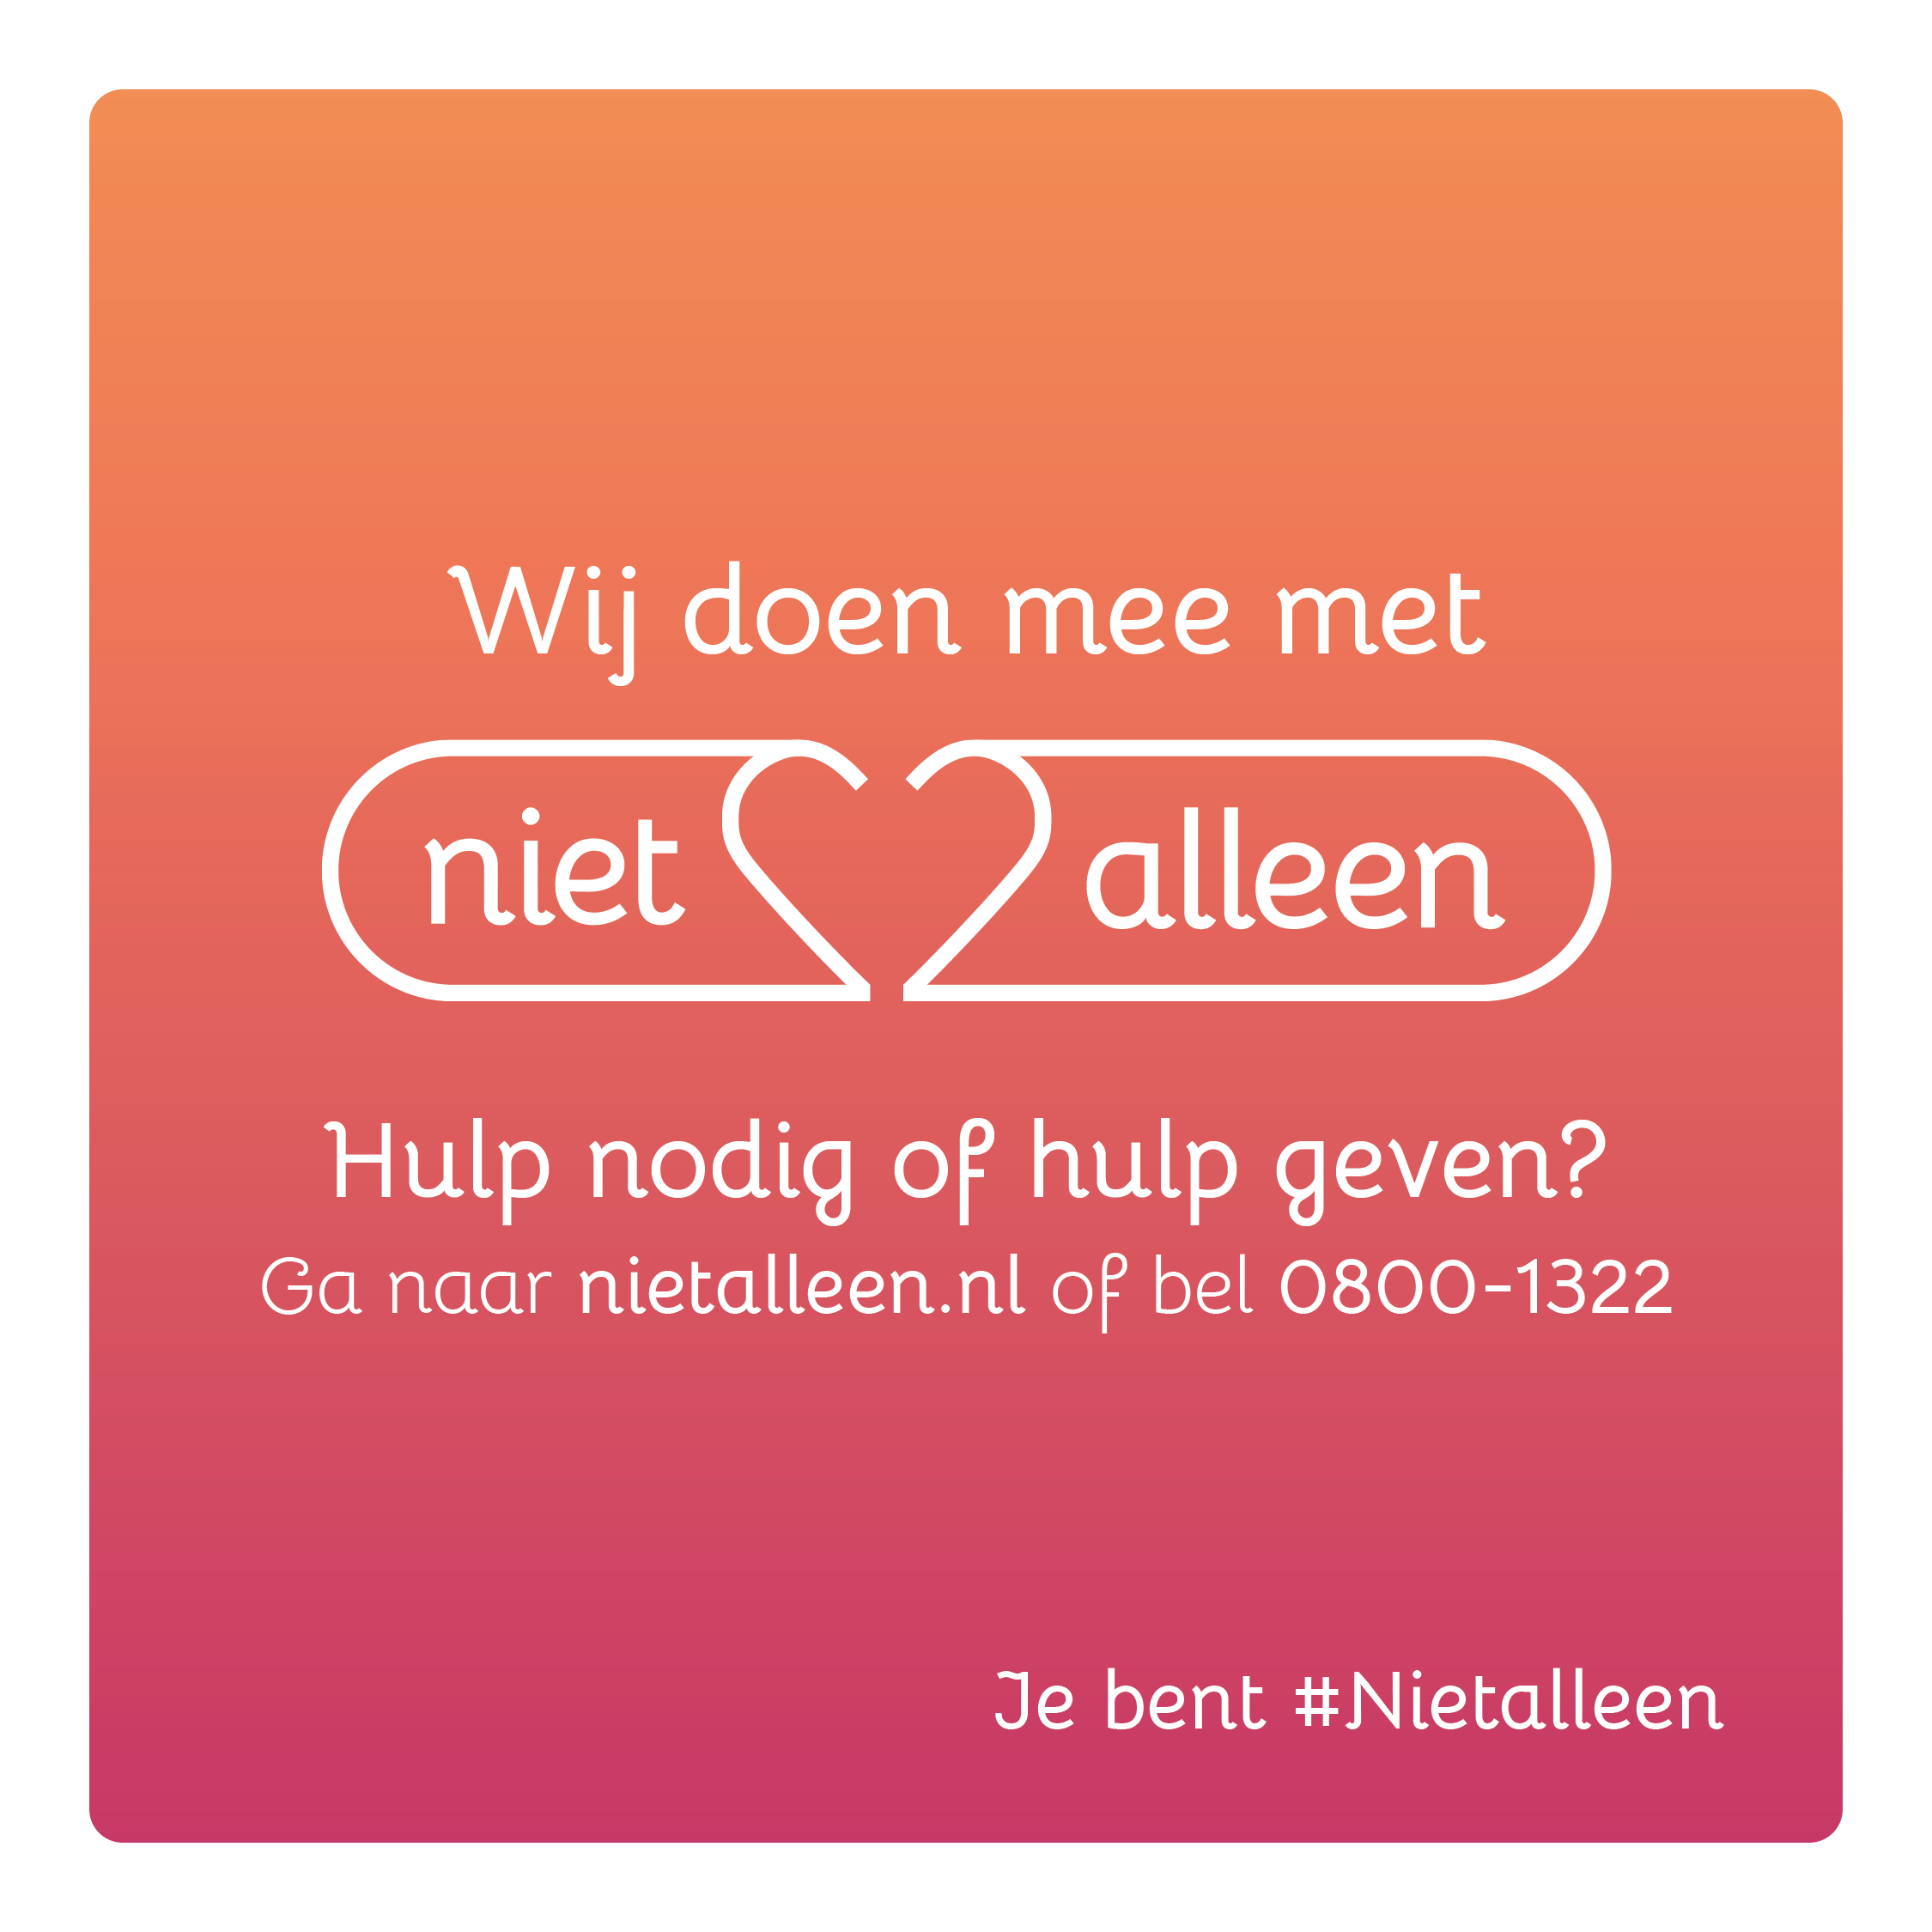 fb-post_wijdoenmee.png